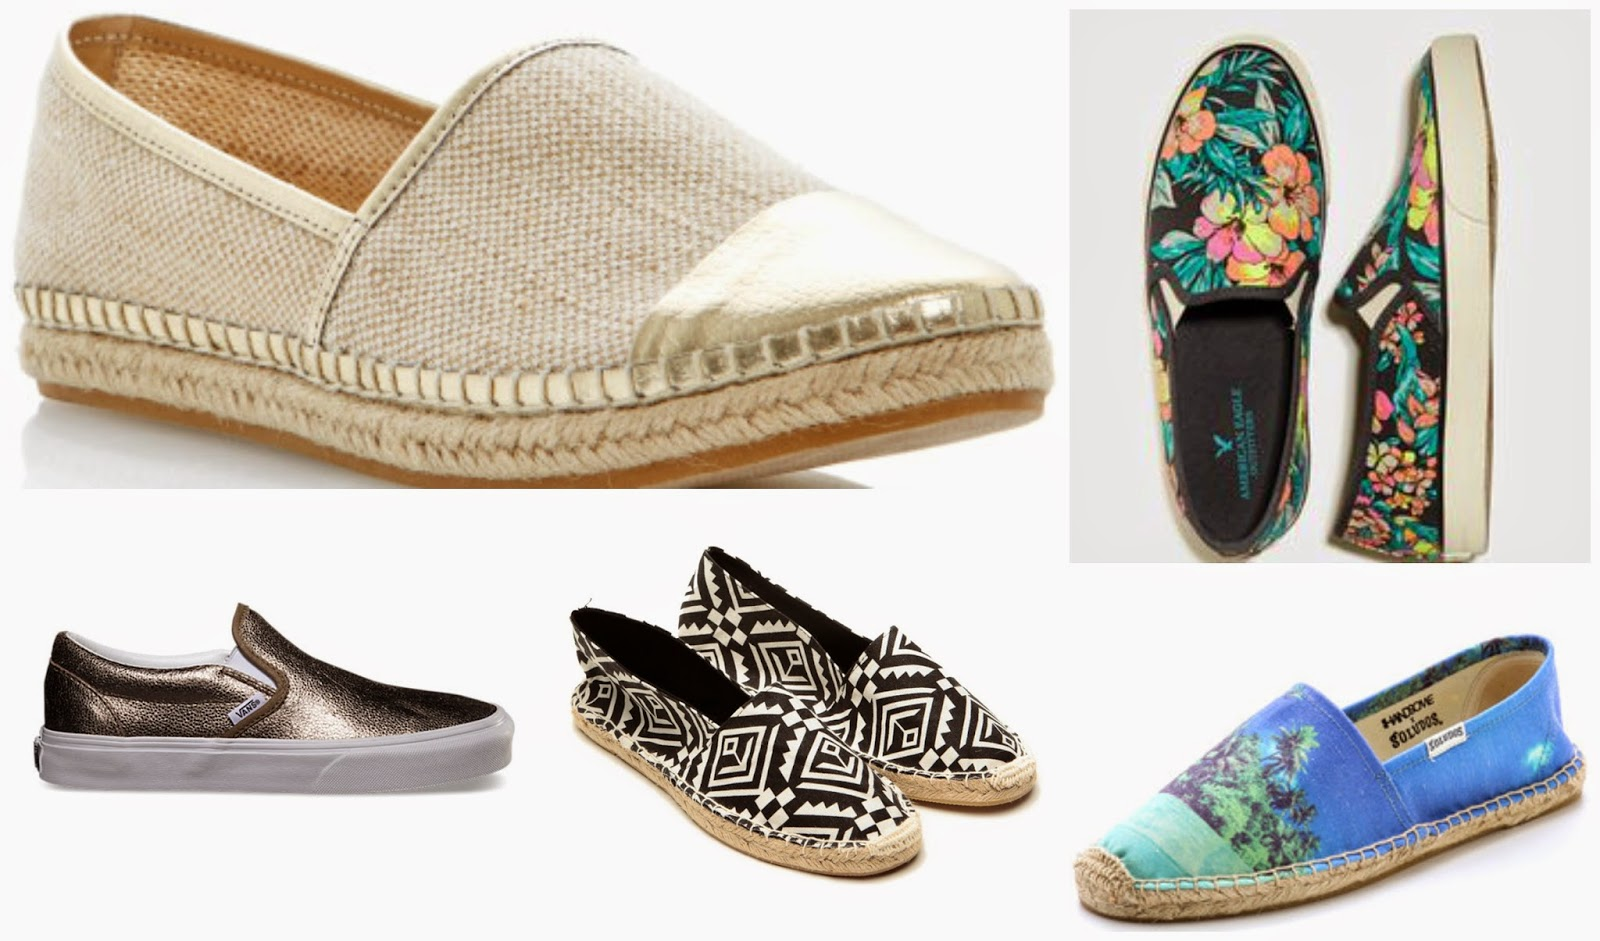 Slip-ons, latest shoe trends for summer, espadrilles, tropical prints, tribal print shoes, shoes for summer, fashion trends, metallic shoes